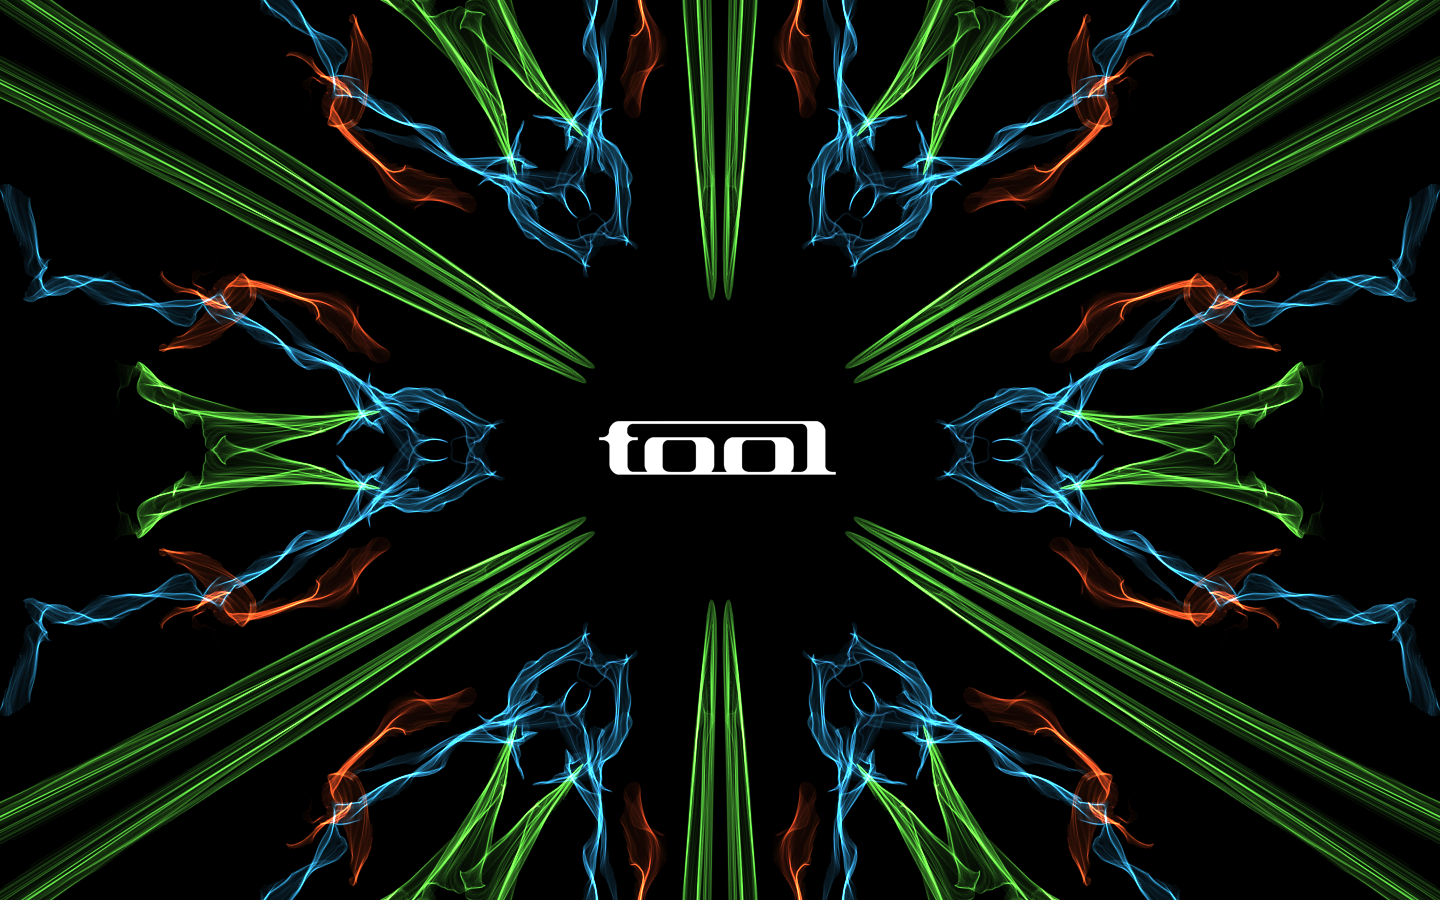 Tool Band Wallpaper HD  WallpaperSafari